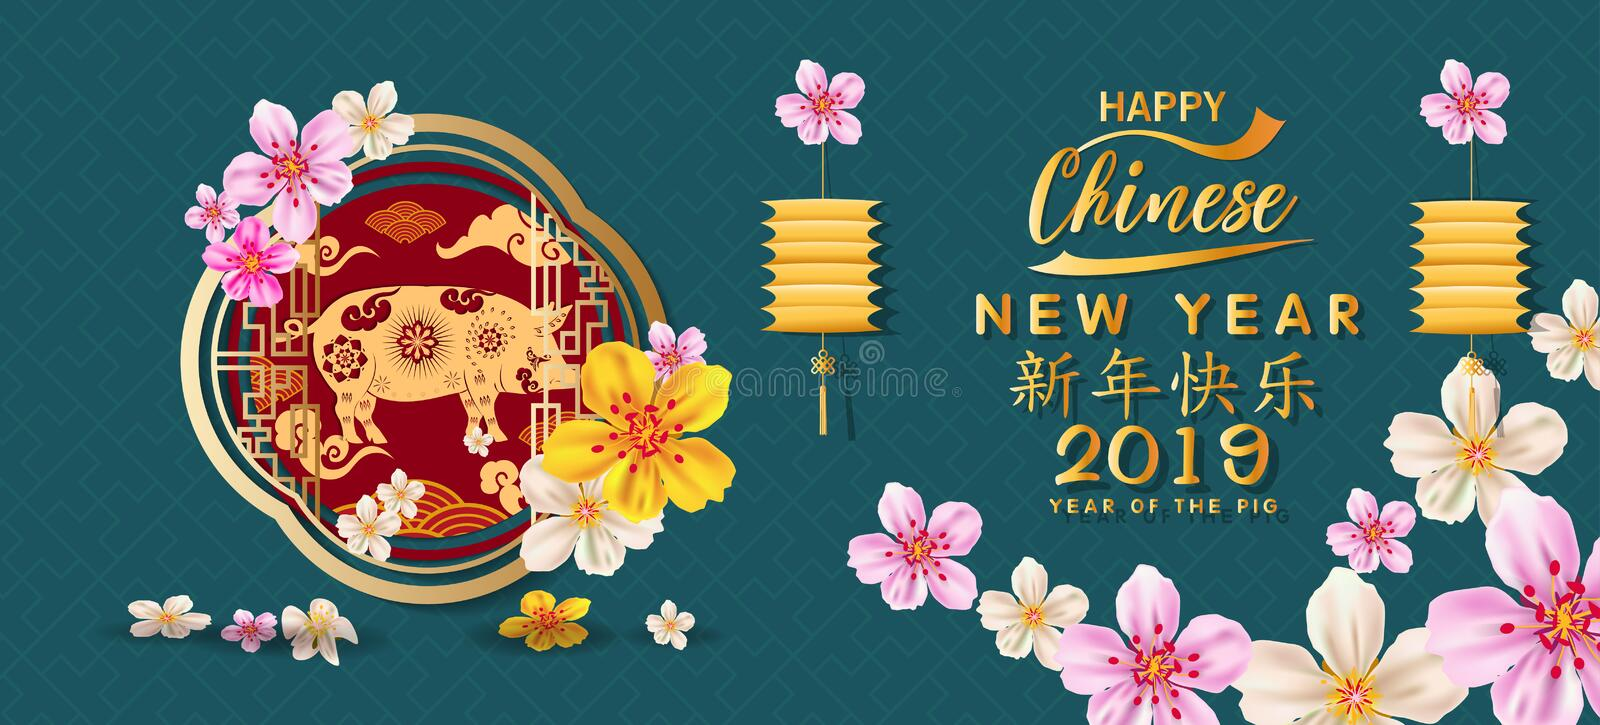 Set Banner Happy Chinese New Year 2019, Year of the Pig. Lunar new year. Chinese characters mean Happy New Year. Happy Chinese New Year 2019, Year of the Pig royalty free illustration